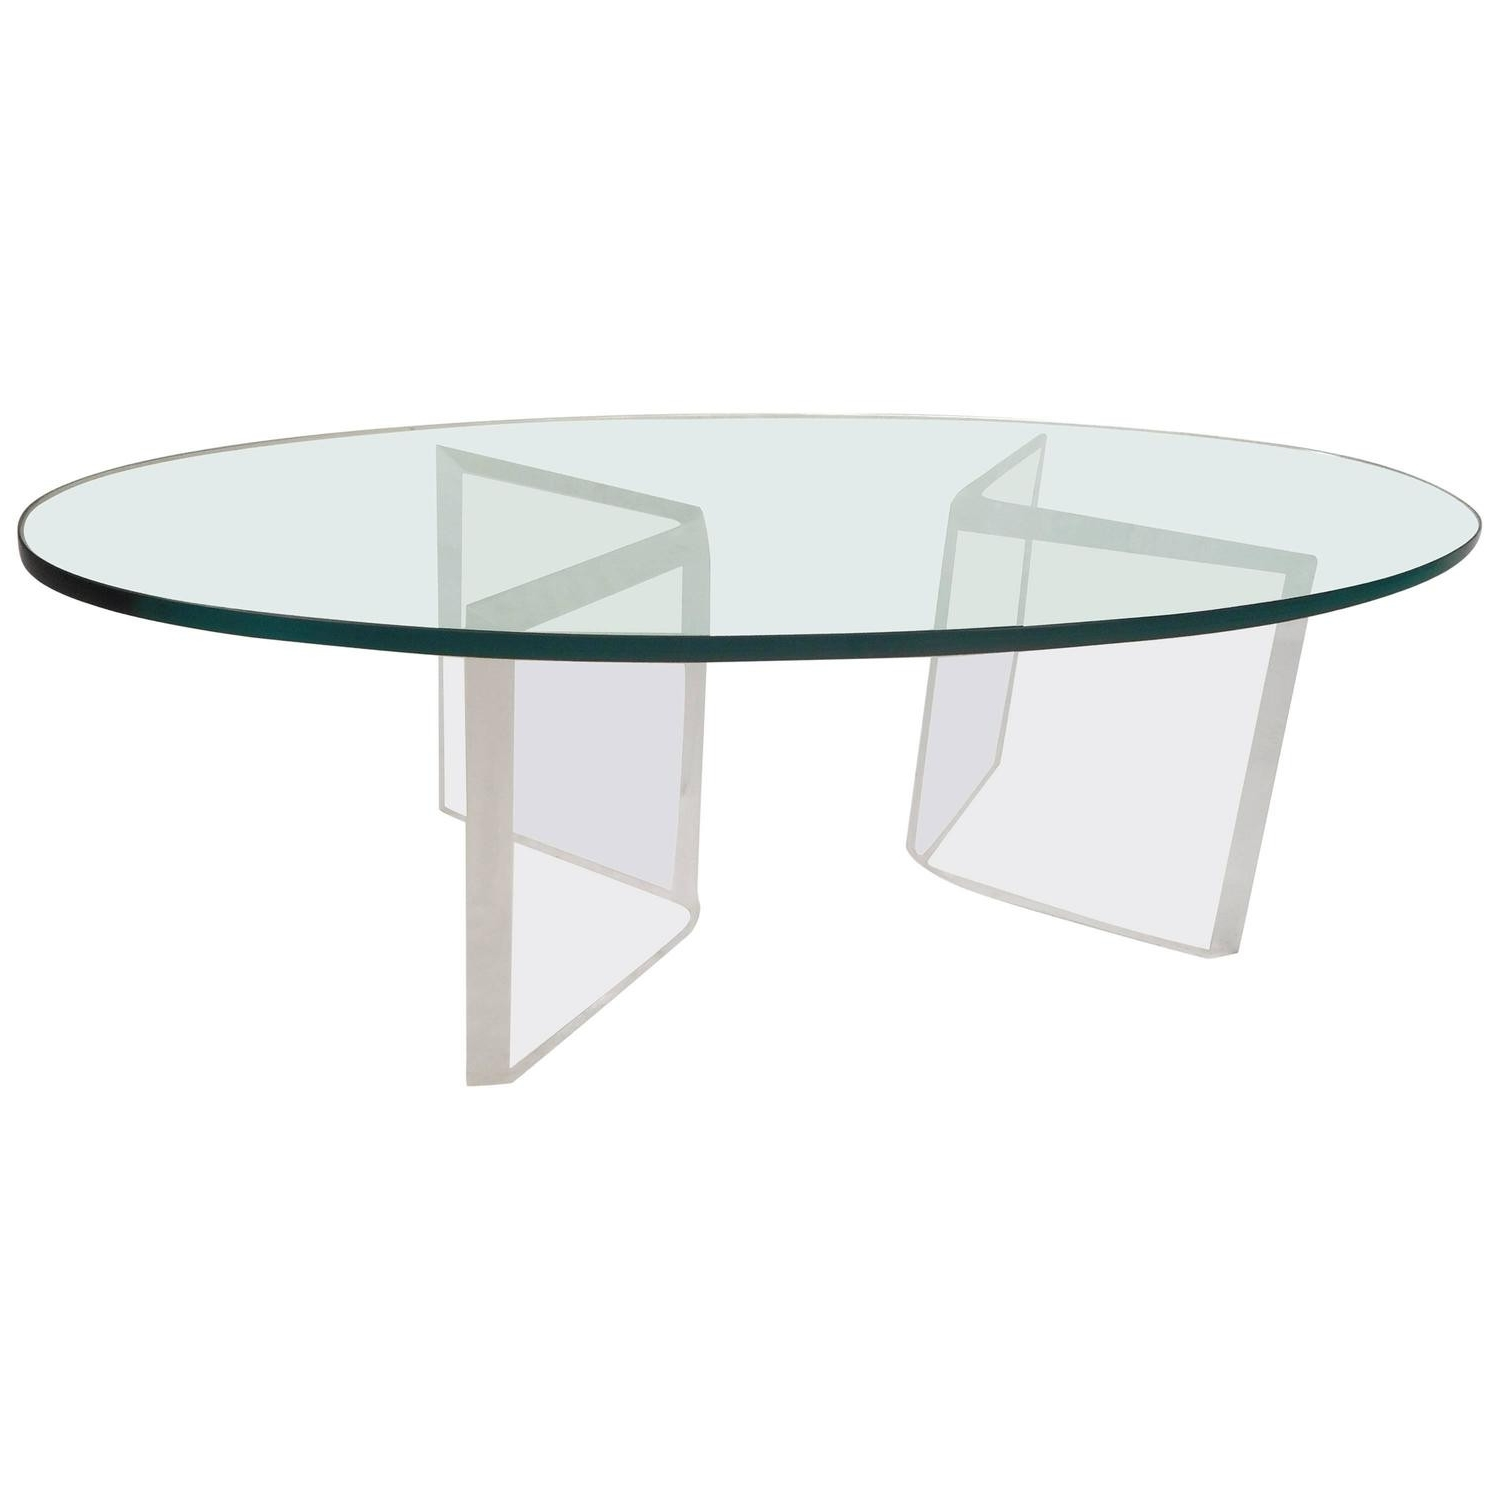 Fashionable Modern Acrylic Coffee Tables With Regard To Acrylic Coffee Table For Sale New Mid Century Modern Occasional (View 17 of 20)